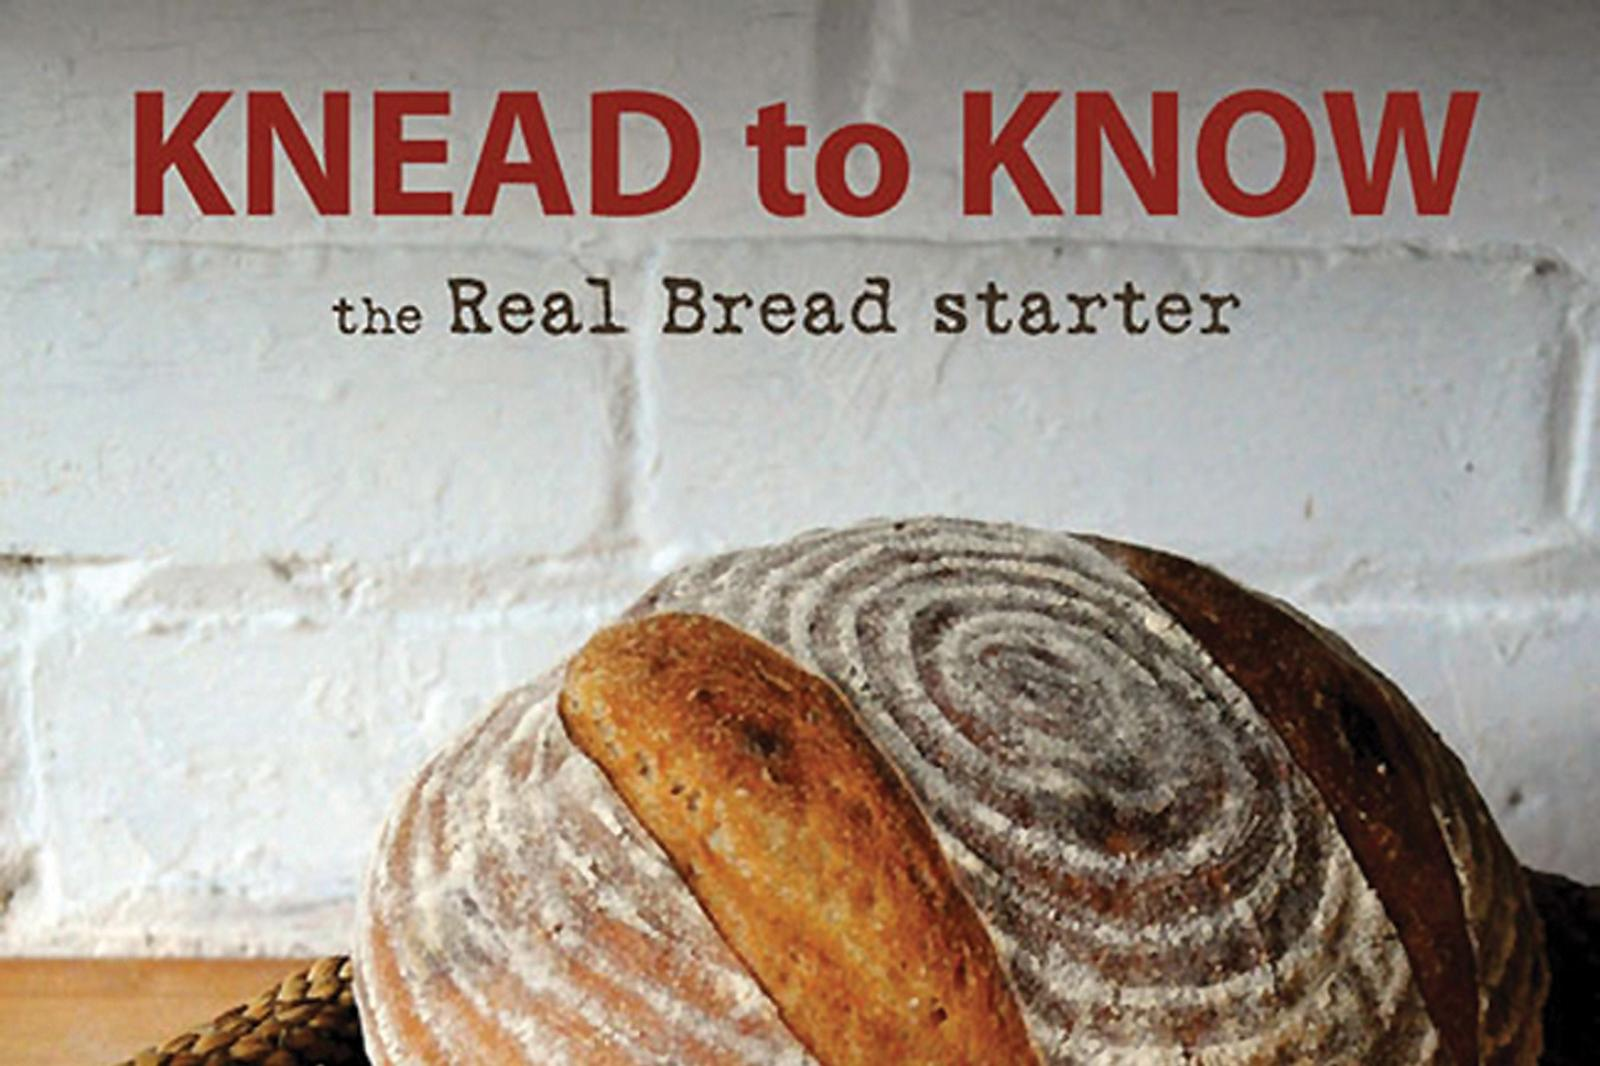 Chris Young / realbreadcampaign.org CC-BY-SA 4.0